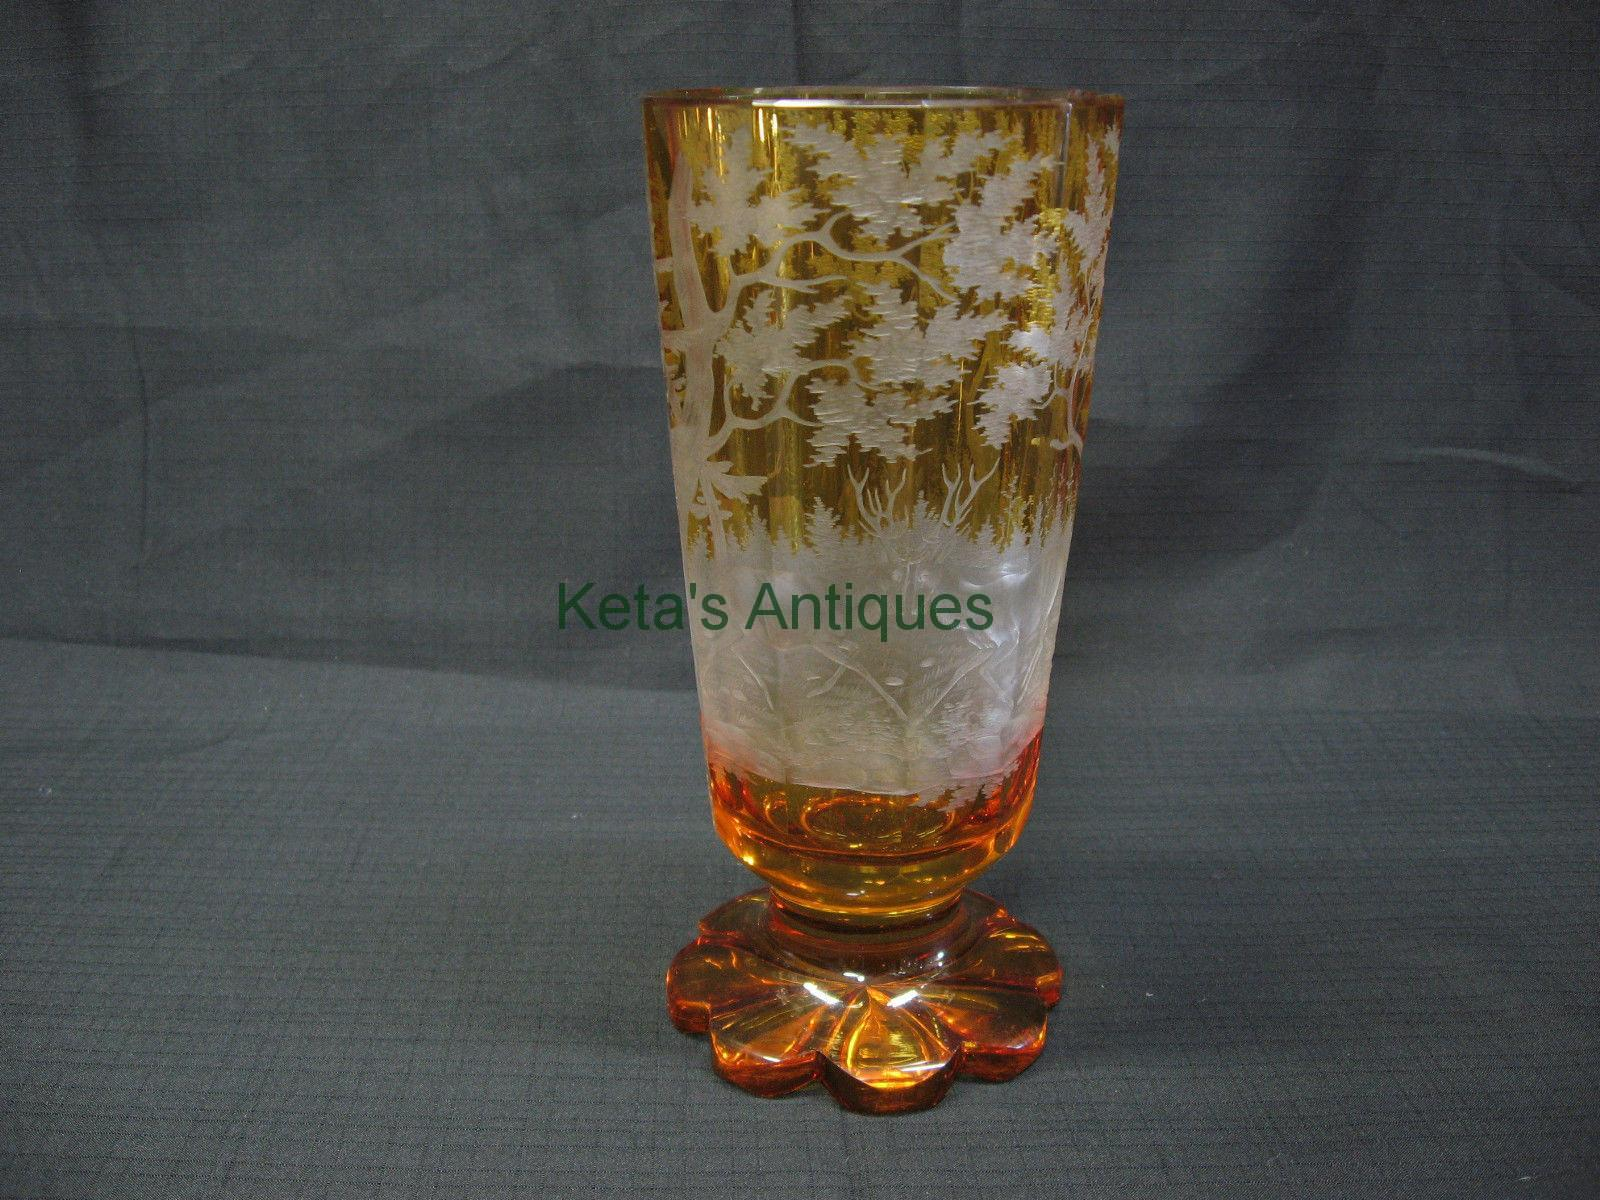 Cut glass ketas antiques 1860s amber vase engraved reviewsmspy